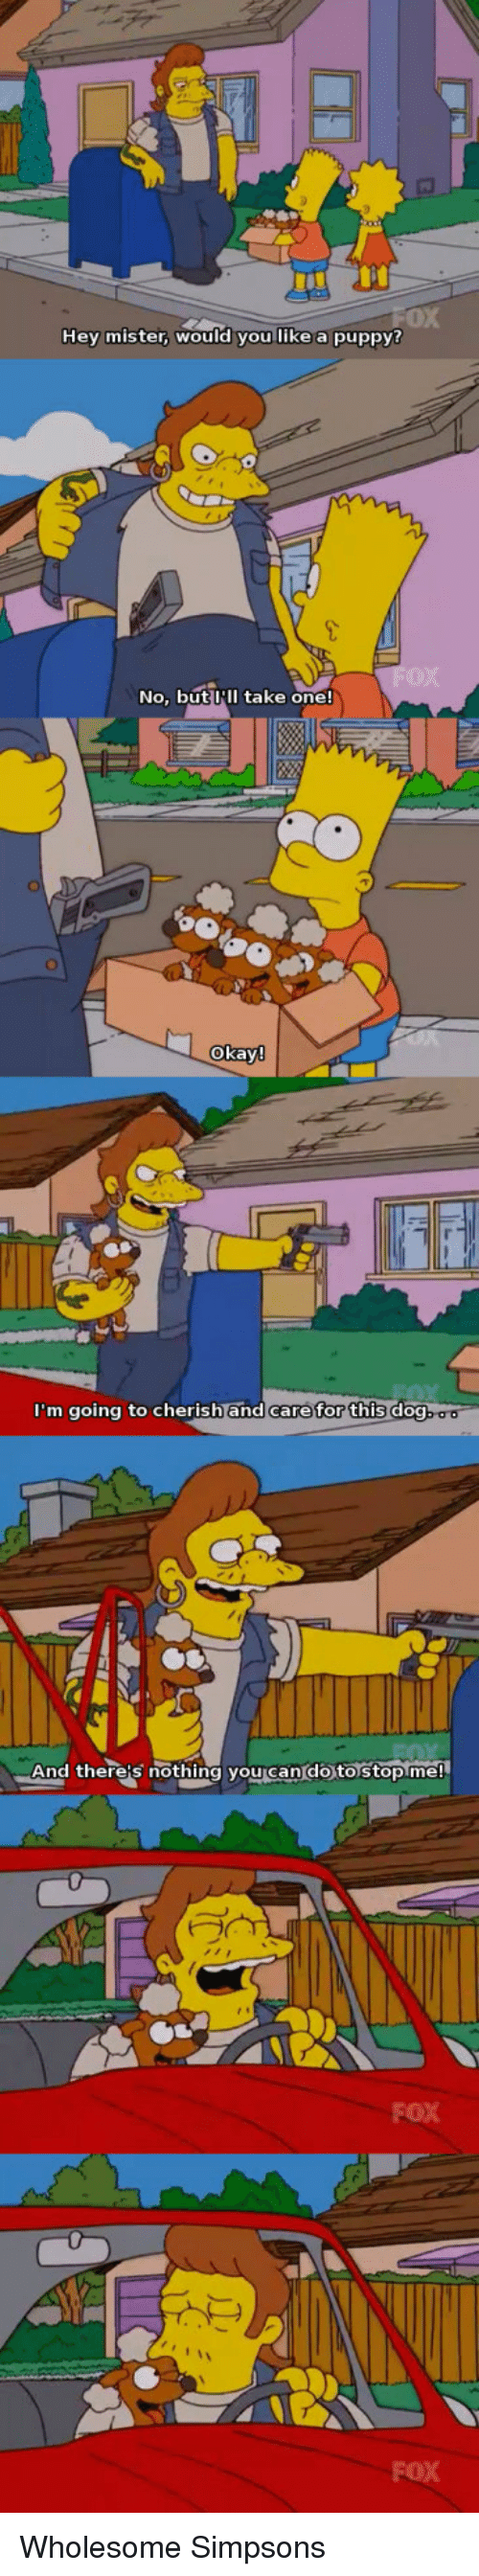 hey mister: 0X  Hey mister, WOuld you like a puppy?  No, but III take one!  okay  m going to cherish and care for this do  And there's nothing you can'do to stopme!  FOX  FOX <p>Wholesome Simpsons</p>